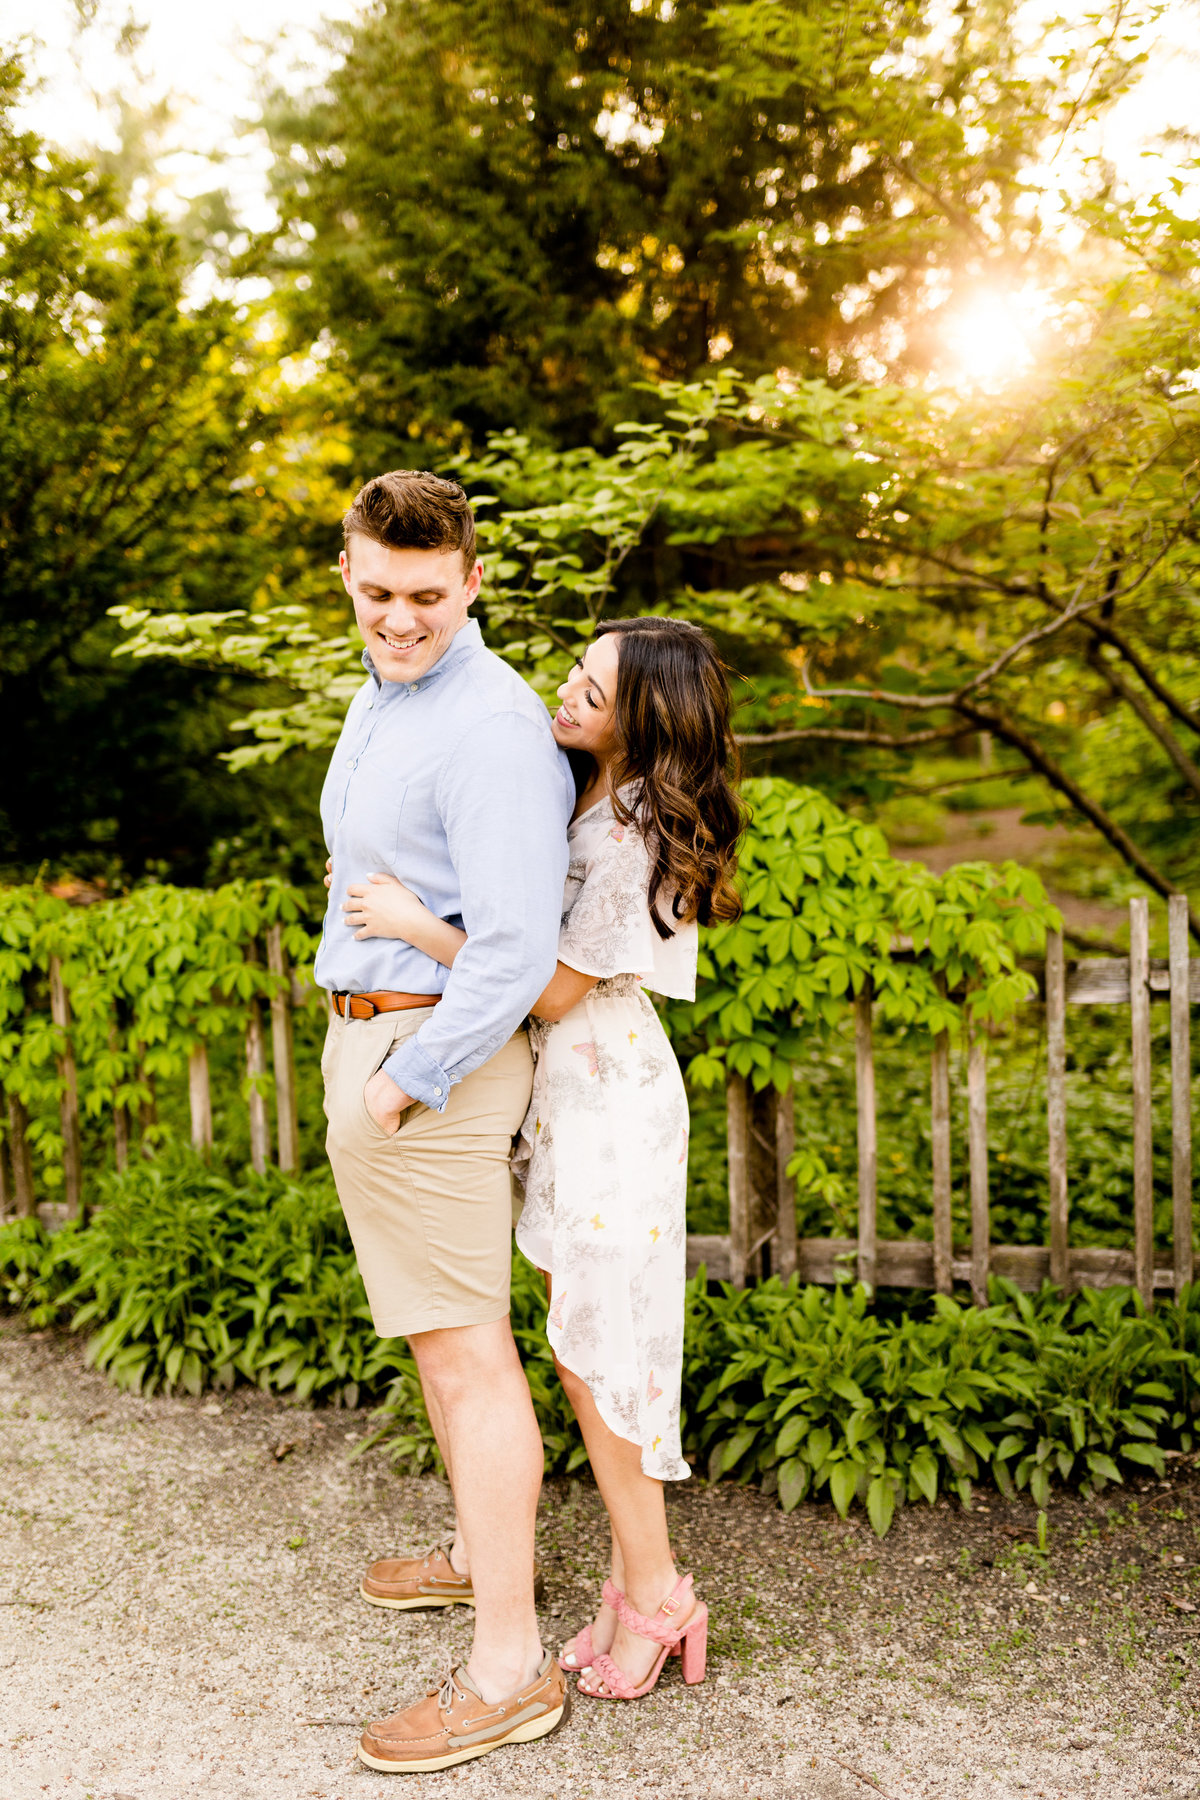 Caitlin and Luke Photography Wedding Engagement Luxury Illinois Destination Colorful Bright Joyful Cheerful Photographer 314